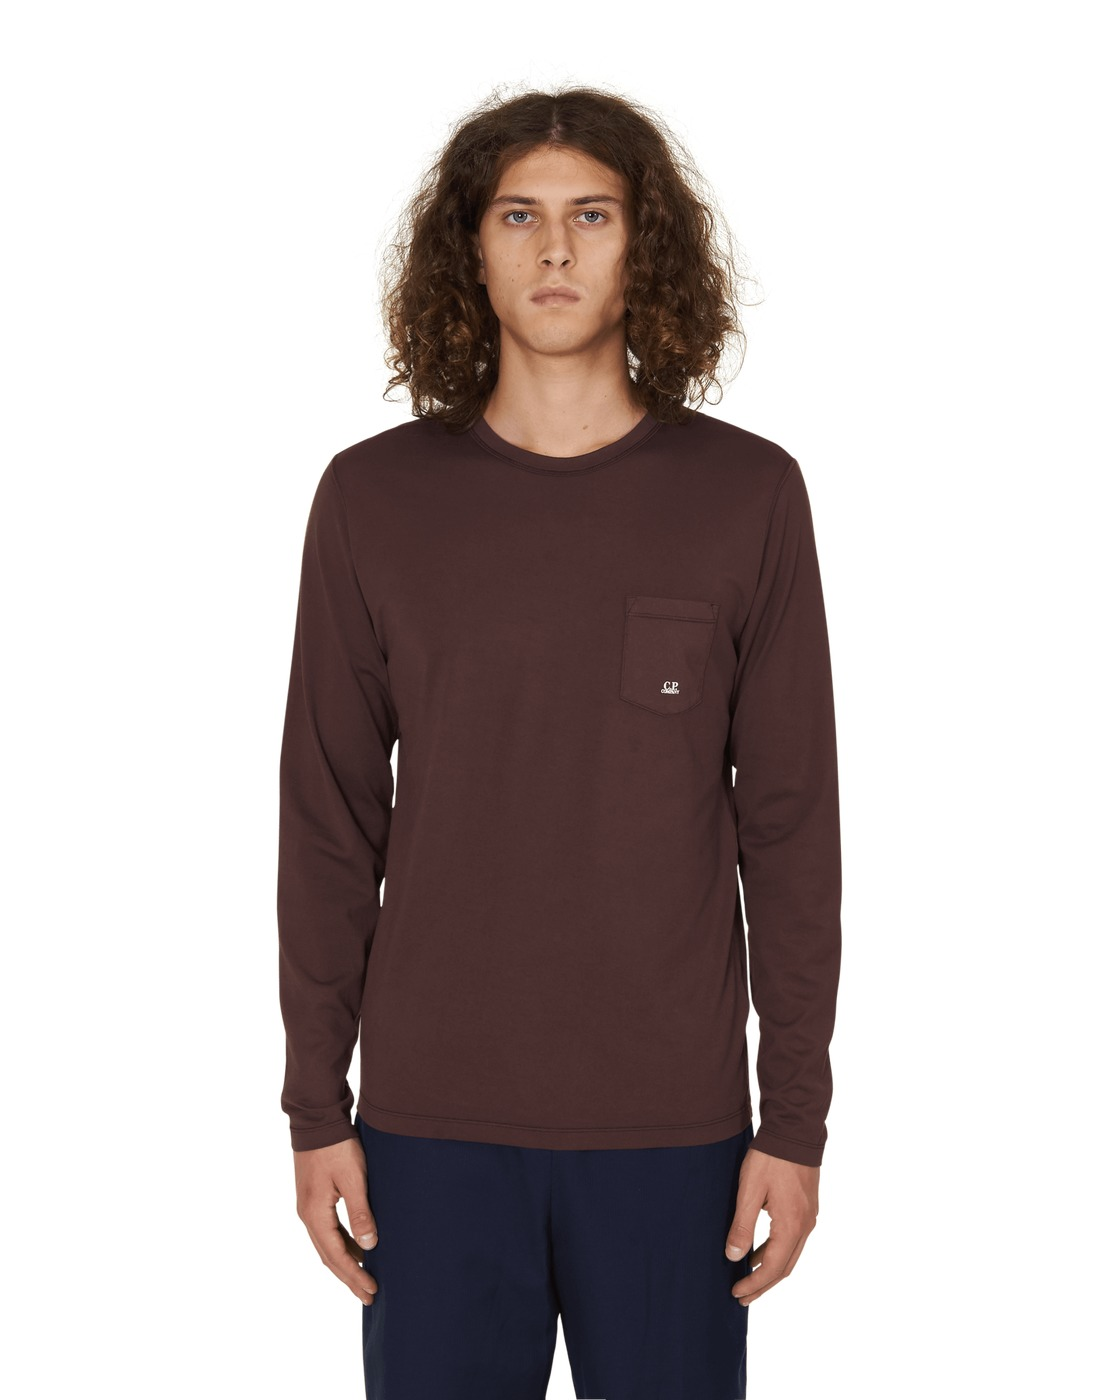 C.P. Company Long Sleeves T Shirt Bitter Chocolate